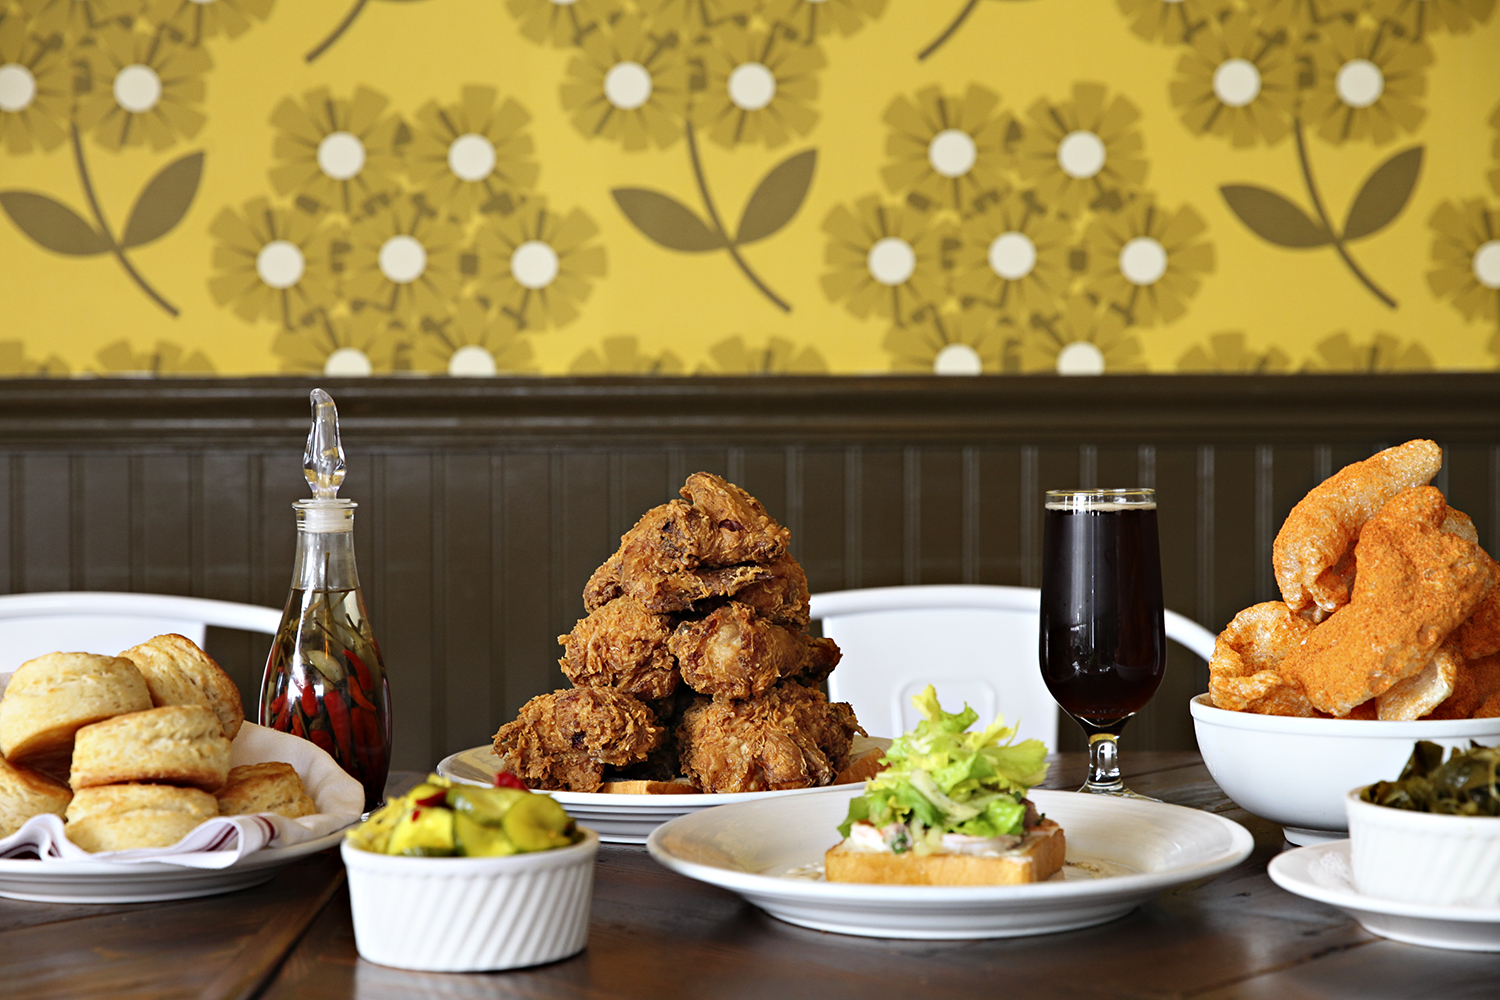 A long table inside Revival's Minneapolis location is set with two towers of fried chicken and a host of sides